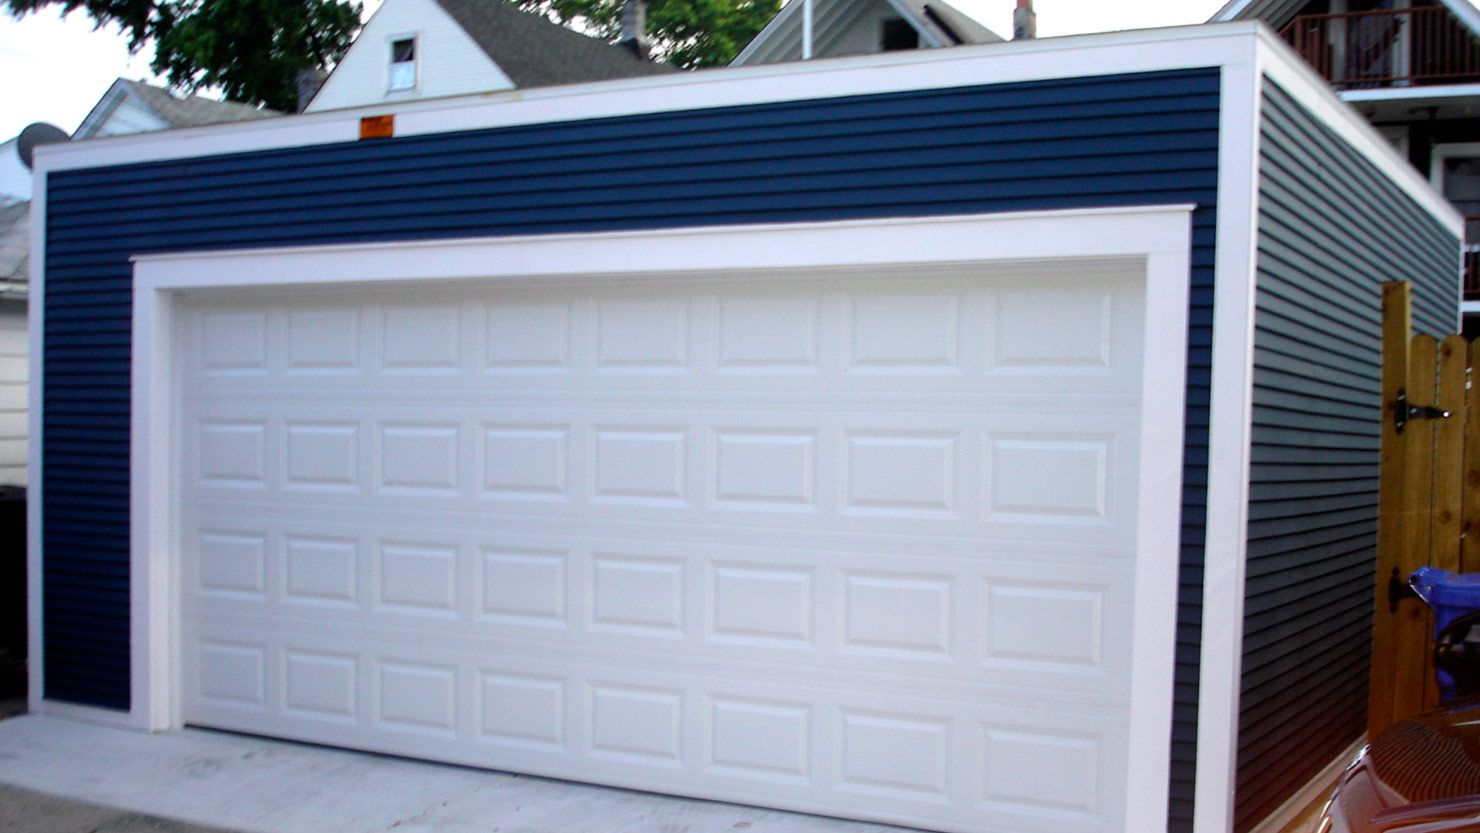 Flatroofgarageconstruction3 7977g 1480833 decks danleys has been building flat roof garages since get a free quote now for your next deck over garage building project rubansaba